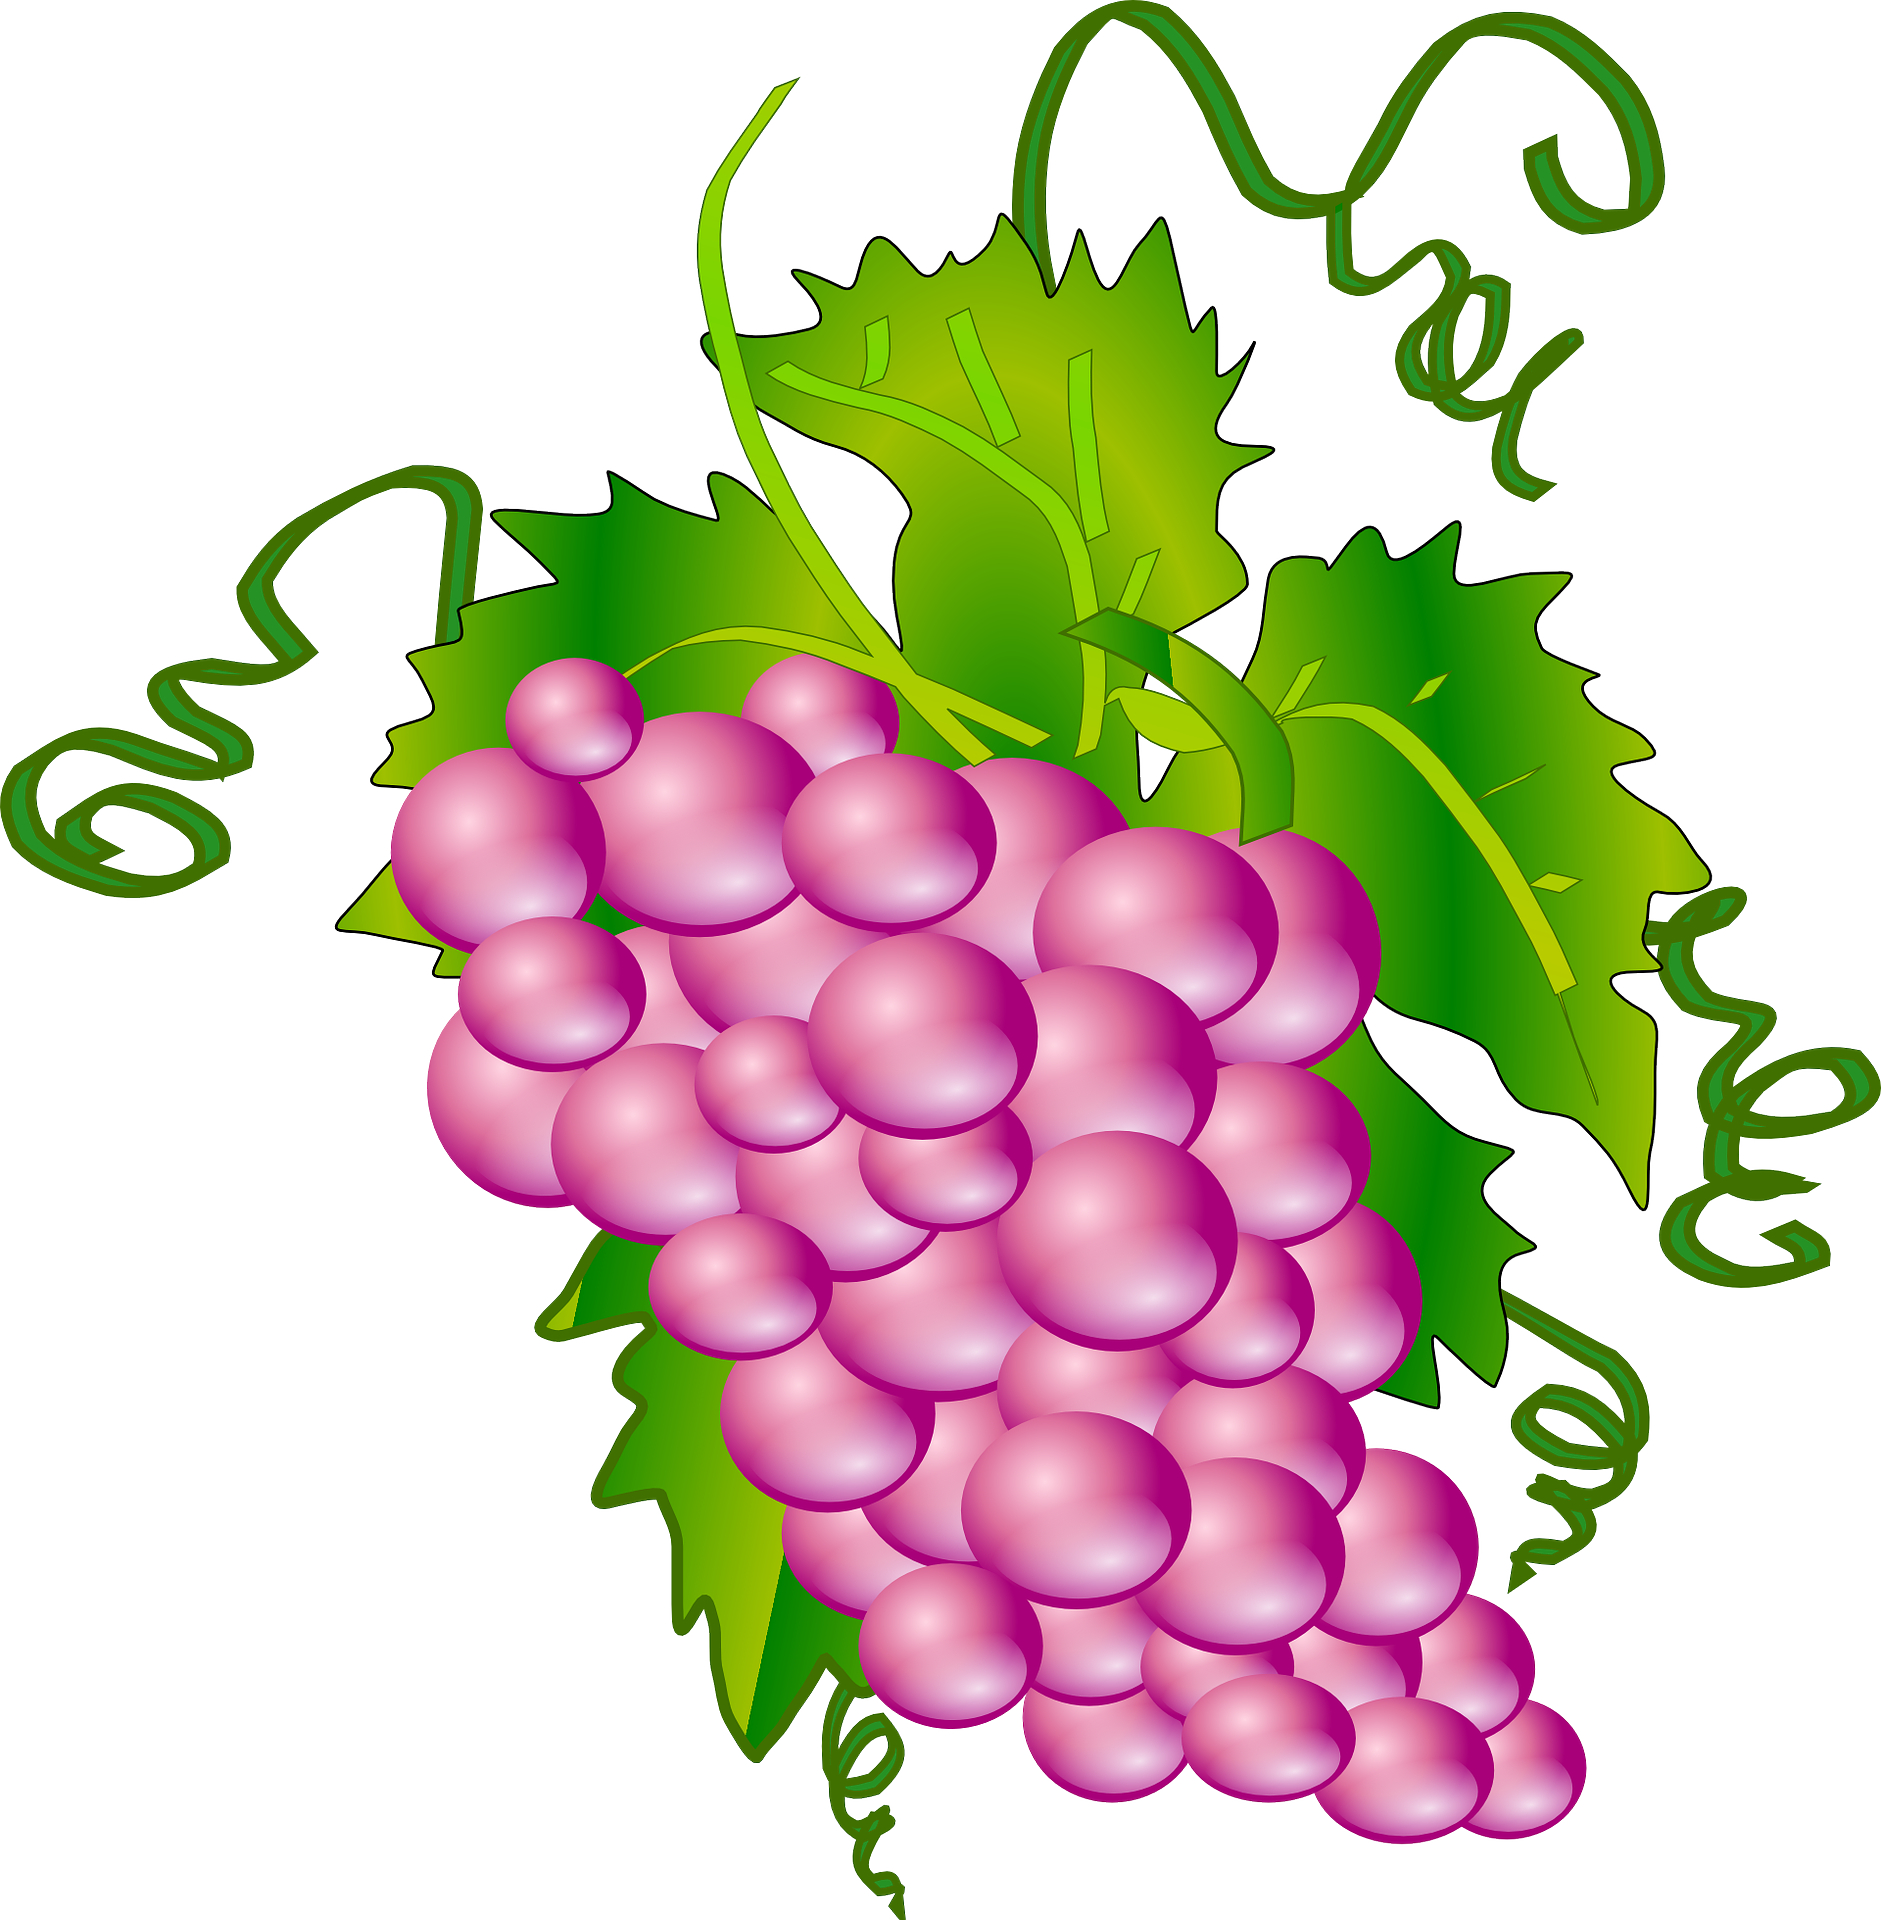 Fruit,vitis vinifera,cartoon grape vector